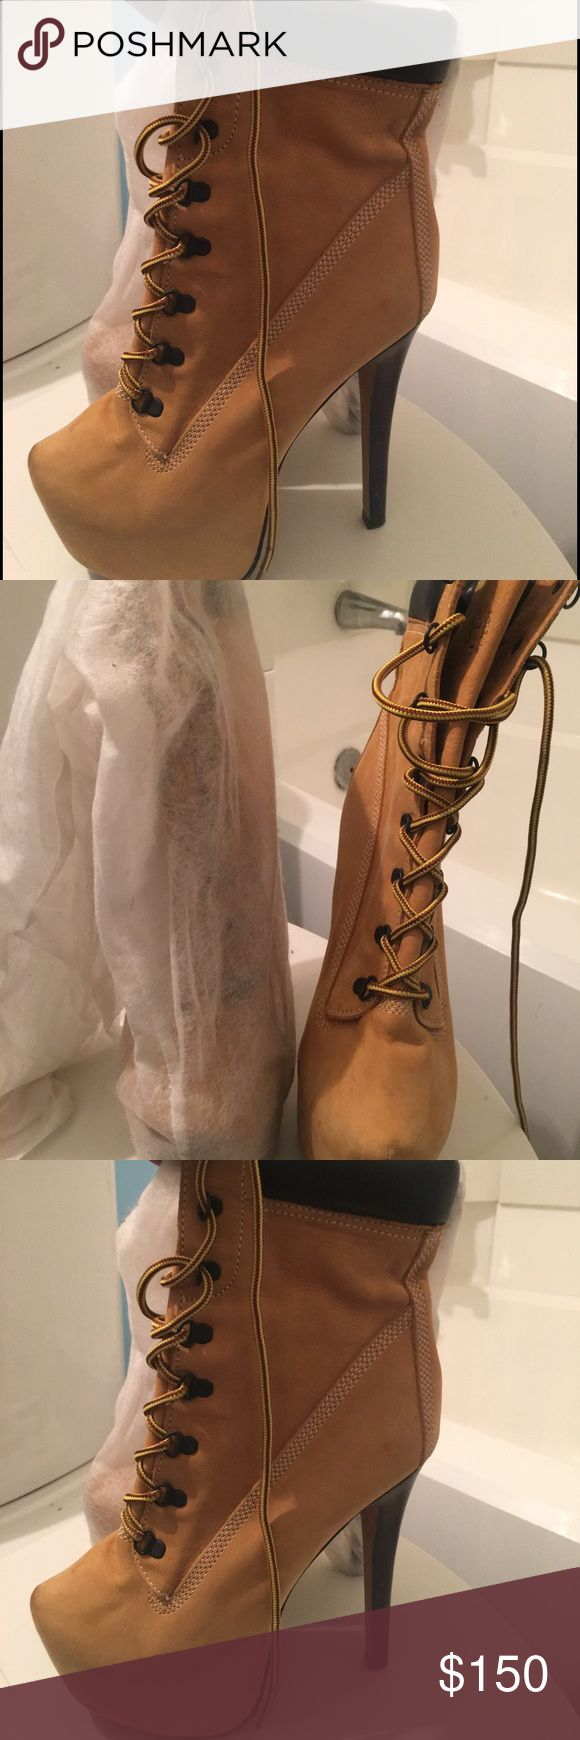 Zigi Z-Lo Suede High heels ‼️NEVER BEEN WORN‼️ Tan and leather dark brown trim 4+ HEEELS NEVER BEEN WORN Brand New out the Bag. 🛑MUST SELL‼️ MAKE AN OFFER⁉️ Timberland Shoes Ankle Boots & Booties